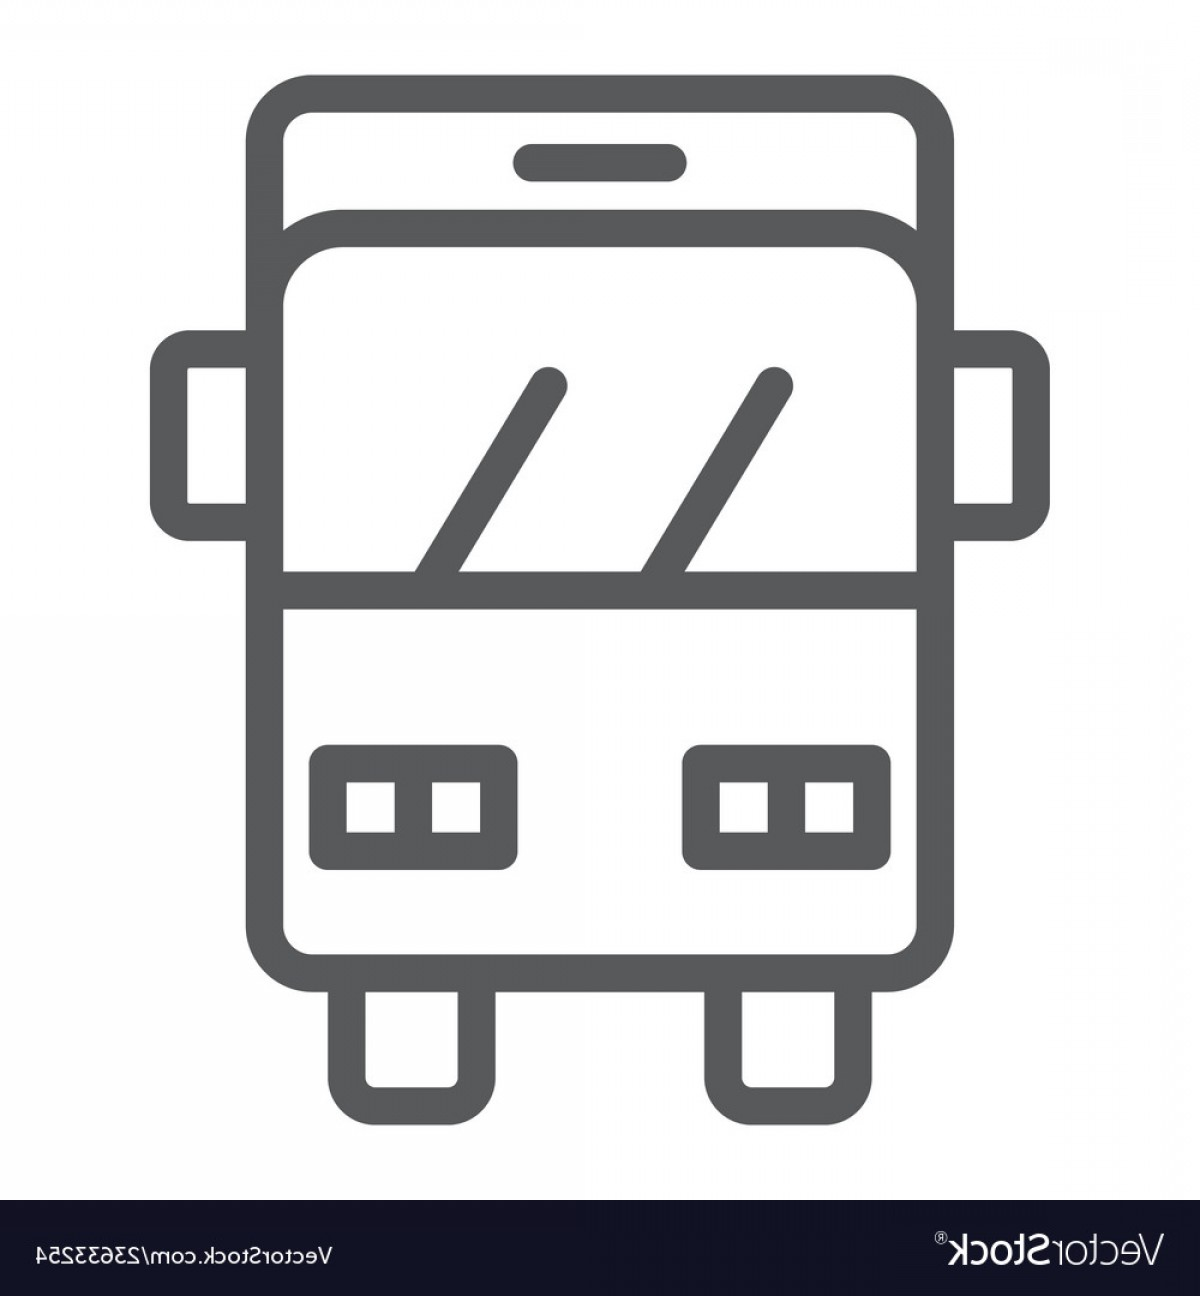 IPhone Emoji Vectors Van: Bus Trip Line Icon Transport And Vehicle Auto Vector